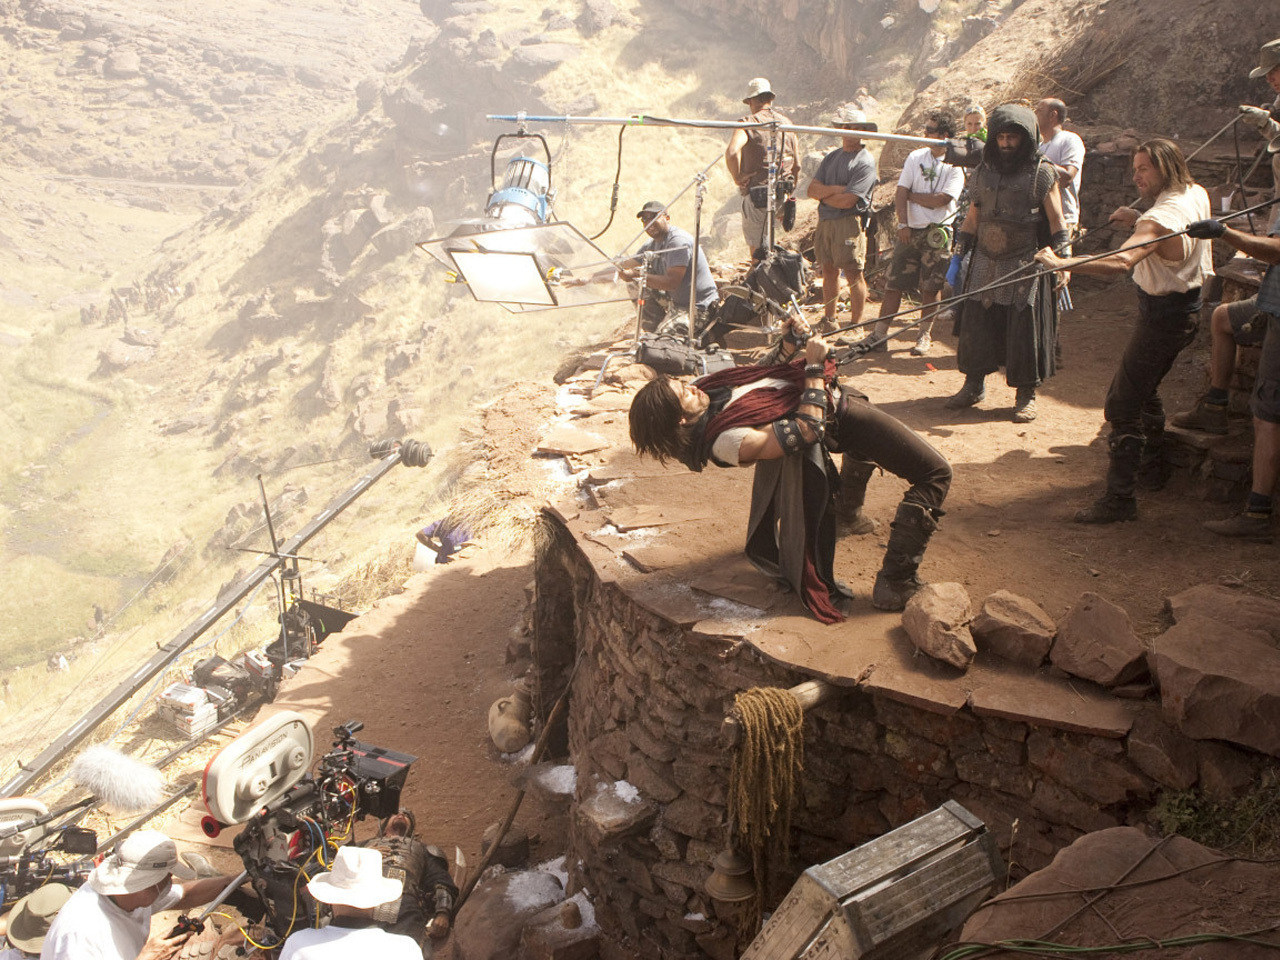 On Location – Prince of Persia: The Sands of Time (2010) Behind the Scenes